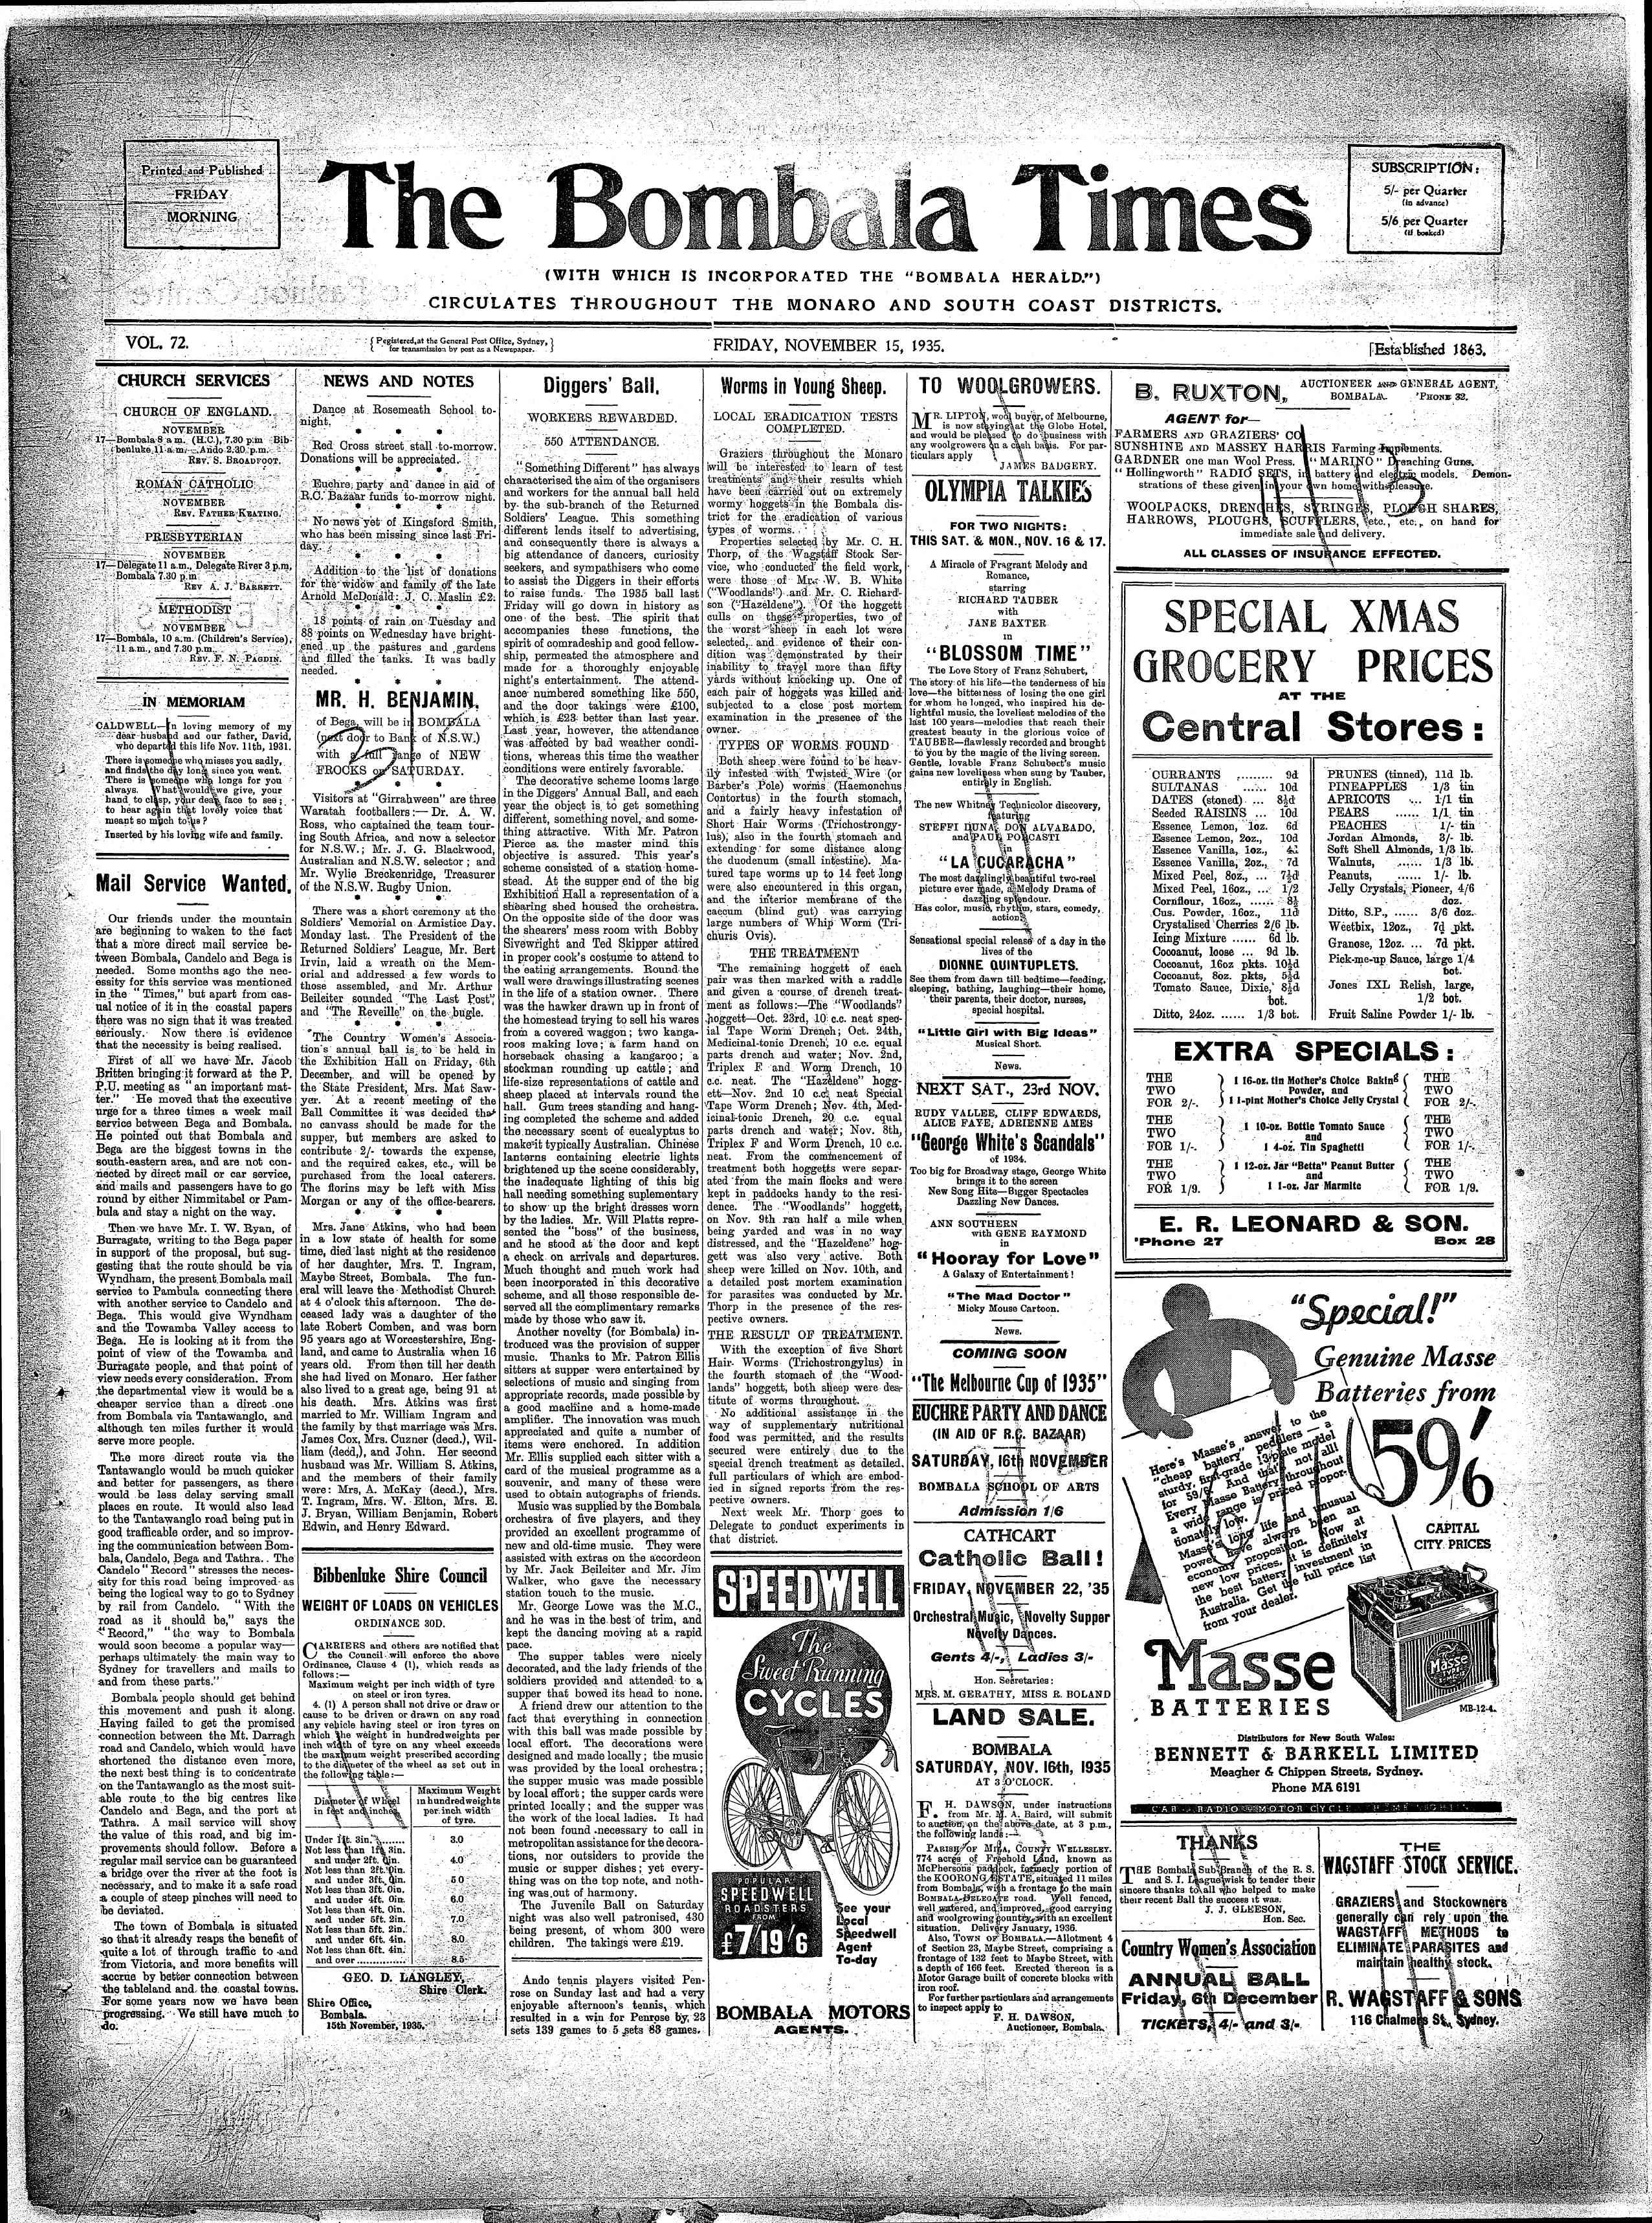 Bombala times nsw australian newspapers myheritage family discover your ancestry search birth marriage and death certificates census records immigration lists and other records all in one family search 1betcityfo Gallery